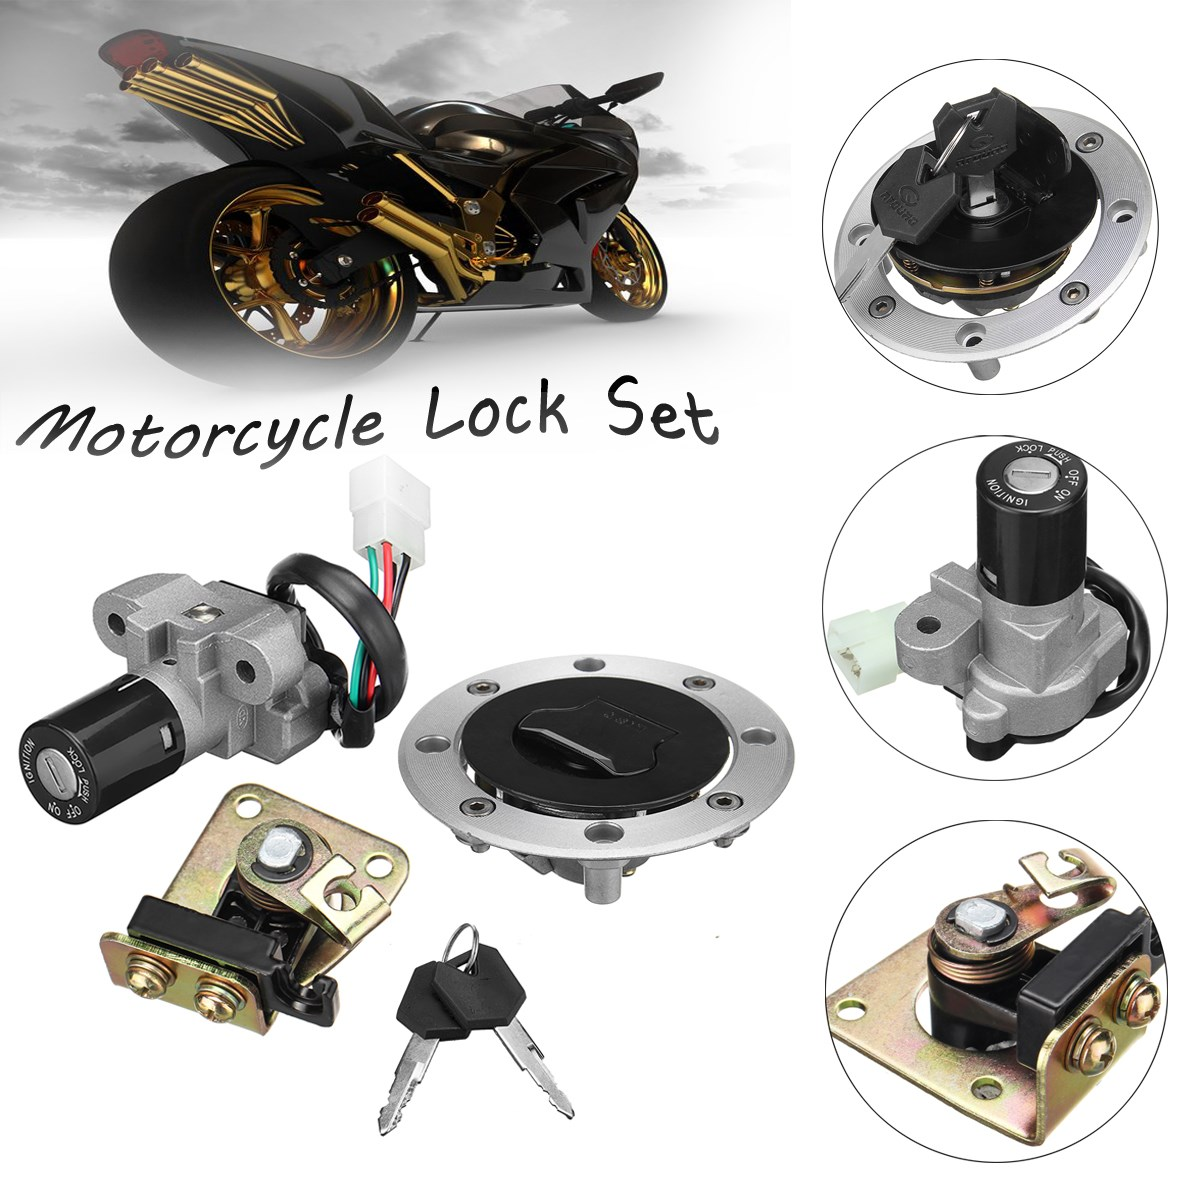 Ignition Switch Seat Lock & Fuel Gas Cap Key Set For Suzuki GS500 89-00 GSX400 GK79A Motorcycle Accessories